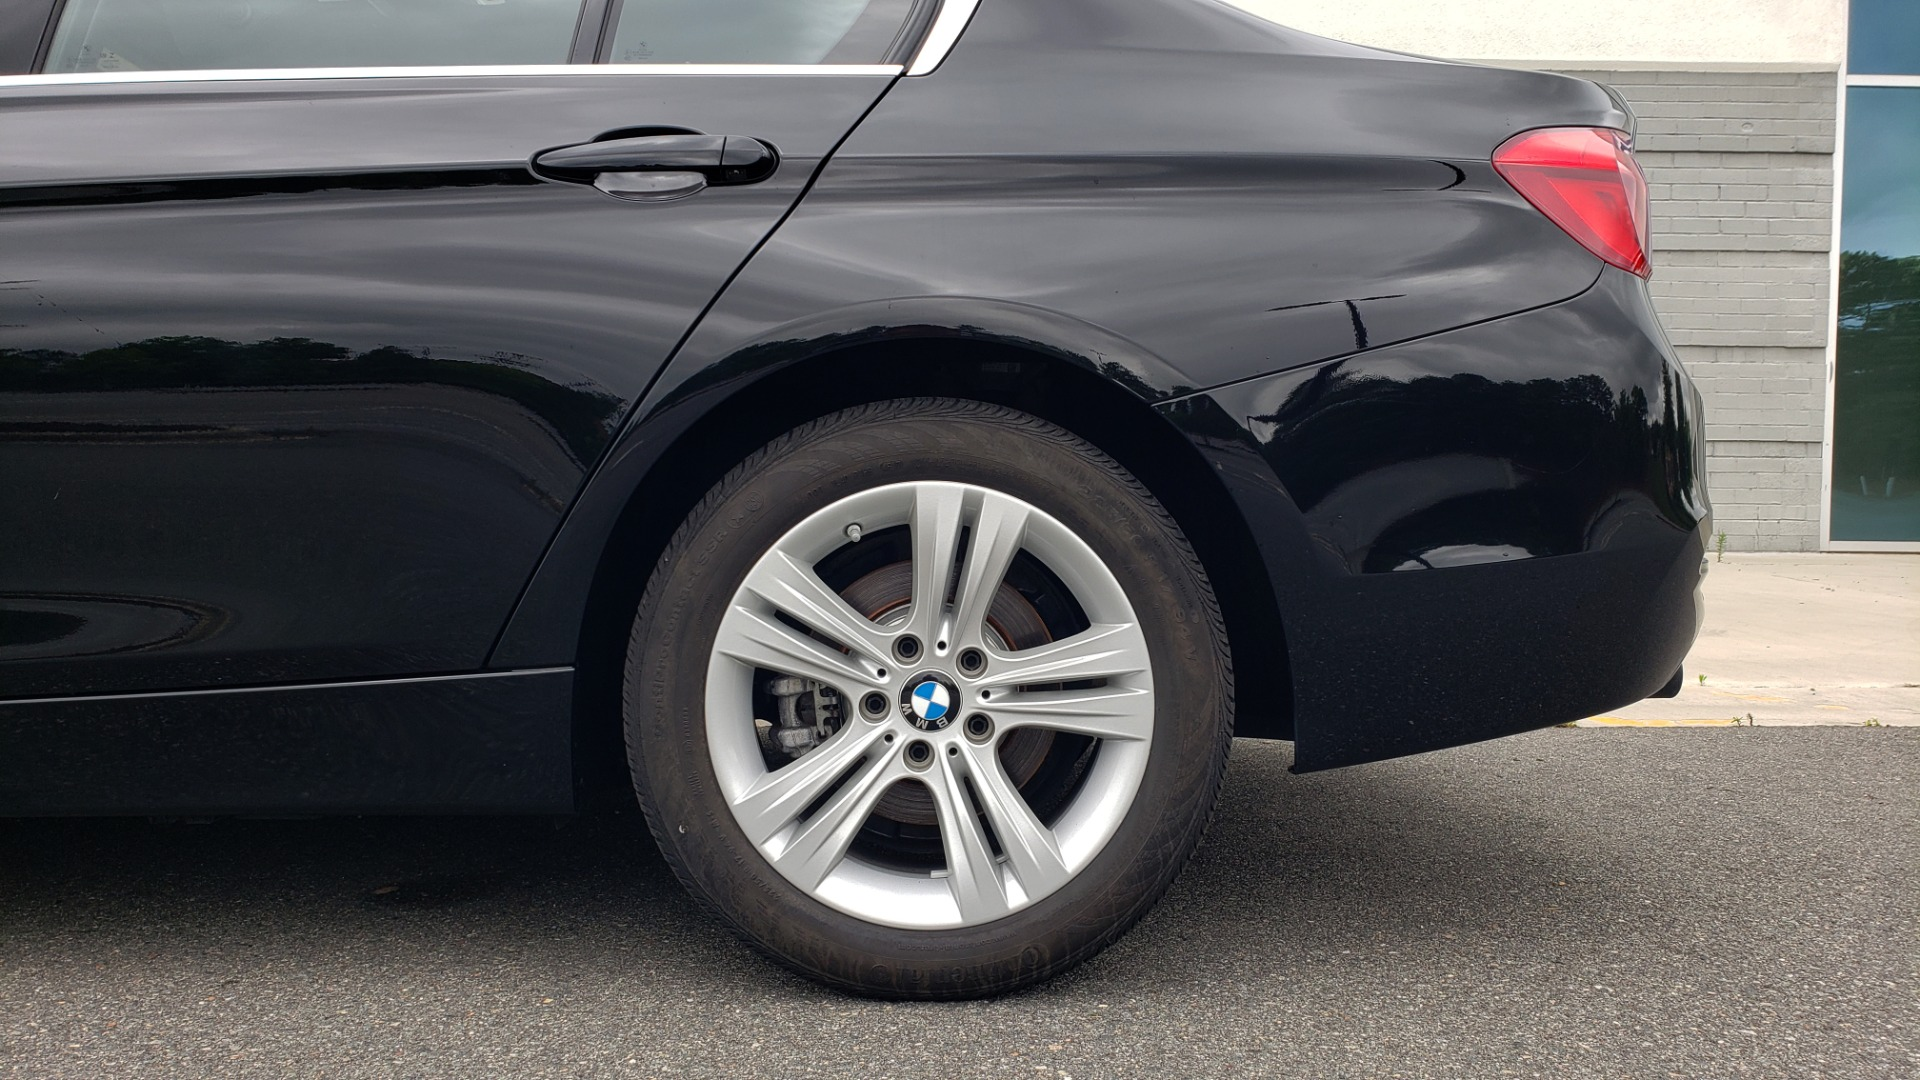 Used 2018 BMW 3 SERIES 330IXDRIVE / CONV PKG / NAV / SUNROOF / HTD STS / REARVIEW for sale $26,552 at Formula Imports in Charlotte NC 28227 78